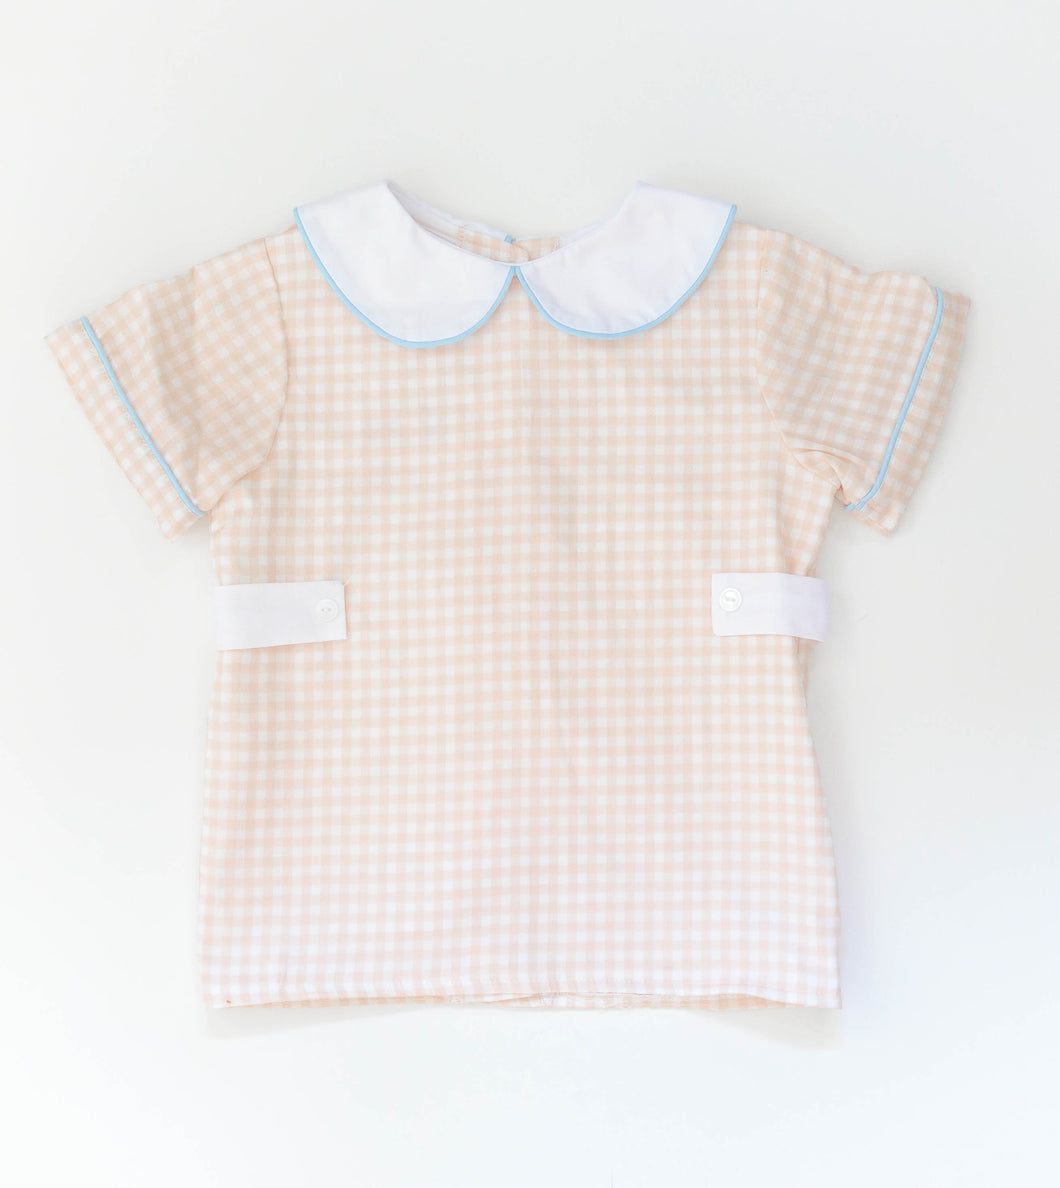 Harmon Shirt Short Sleeve: Sample Size 4T